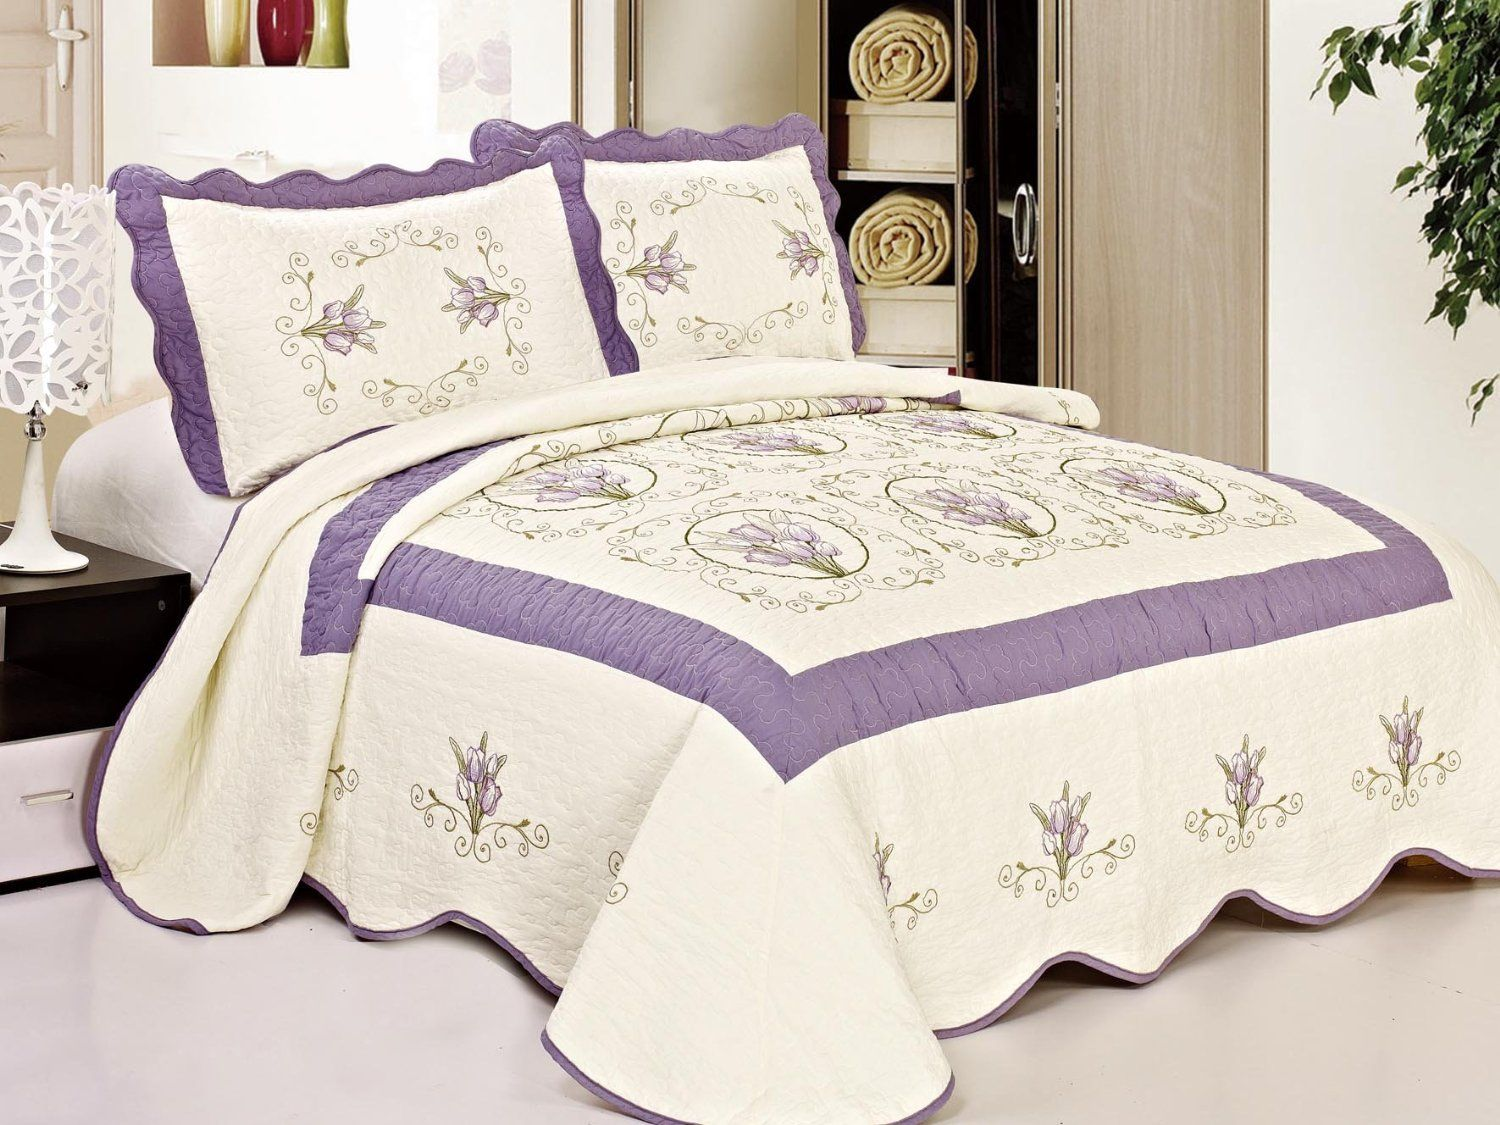 Amazon.com - Queen Size Quilted Bedspread Purple Flowers Floral ... : purple quilted bedspreads - Adamdwight.com